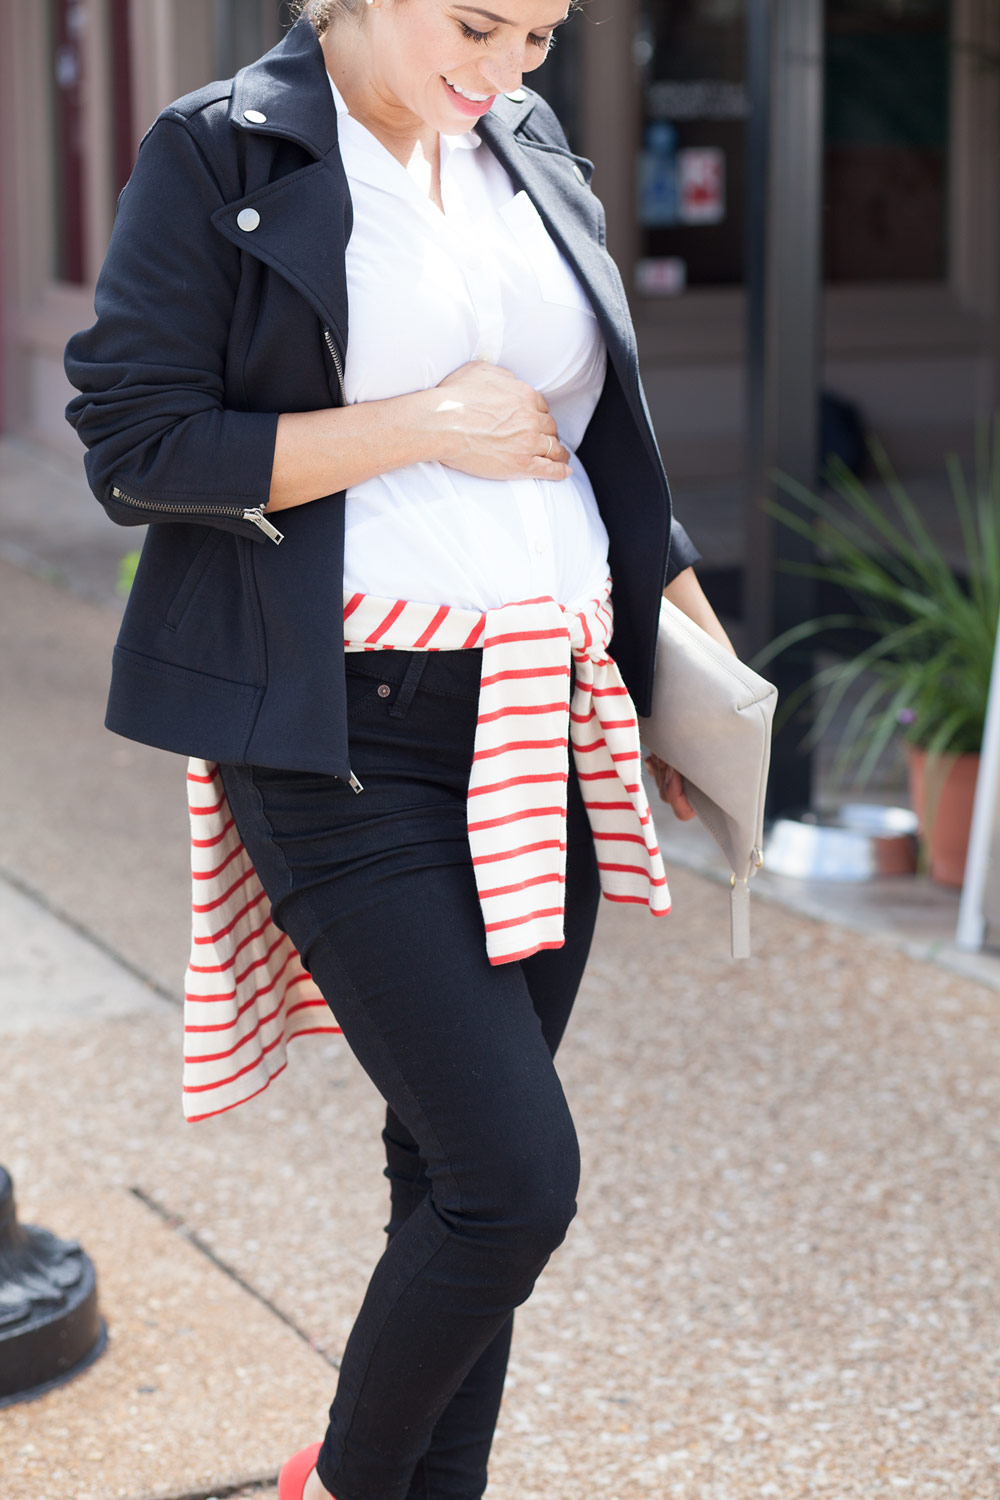 old-navy-fall-outfit-ideas-what-to-wear-casual-look-maternity-style-corporate-catwalk-new-york-fashion-blogger-nyc-6